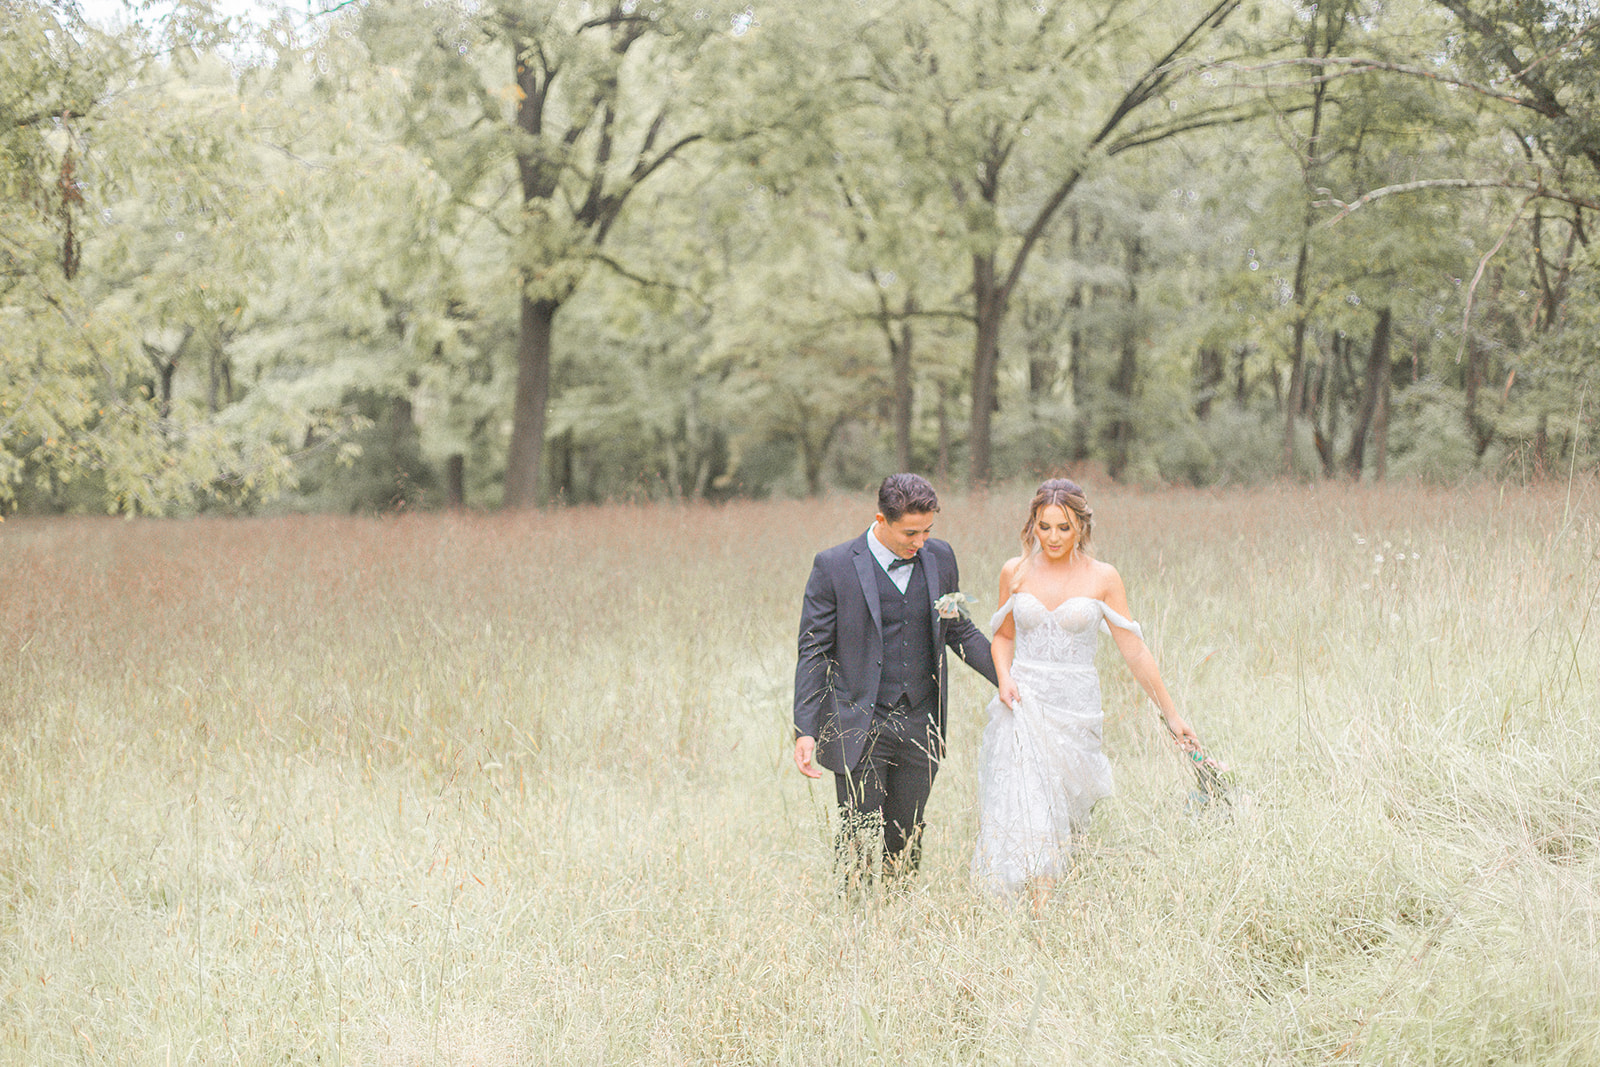 Dreamy Autumn Intimate Wedding Inspiration as photographed by Kevin & Aly Photography